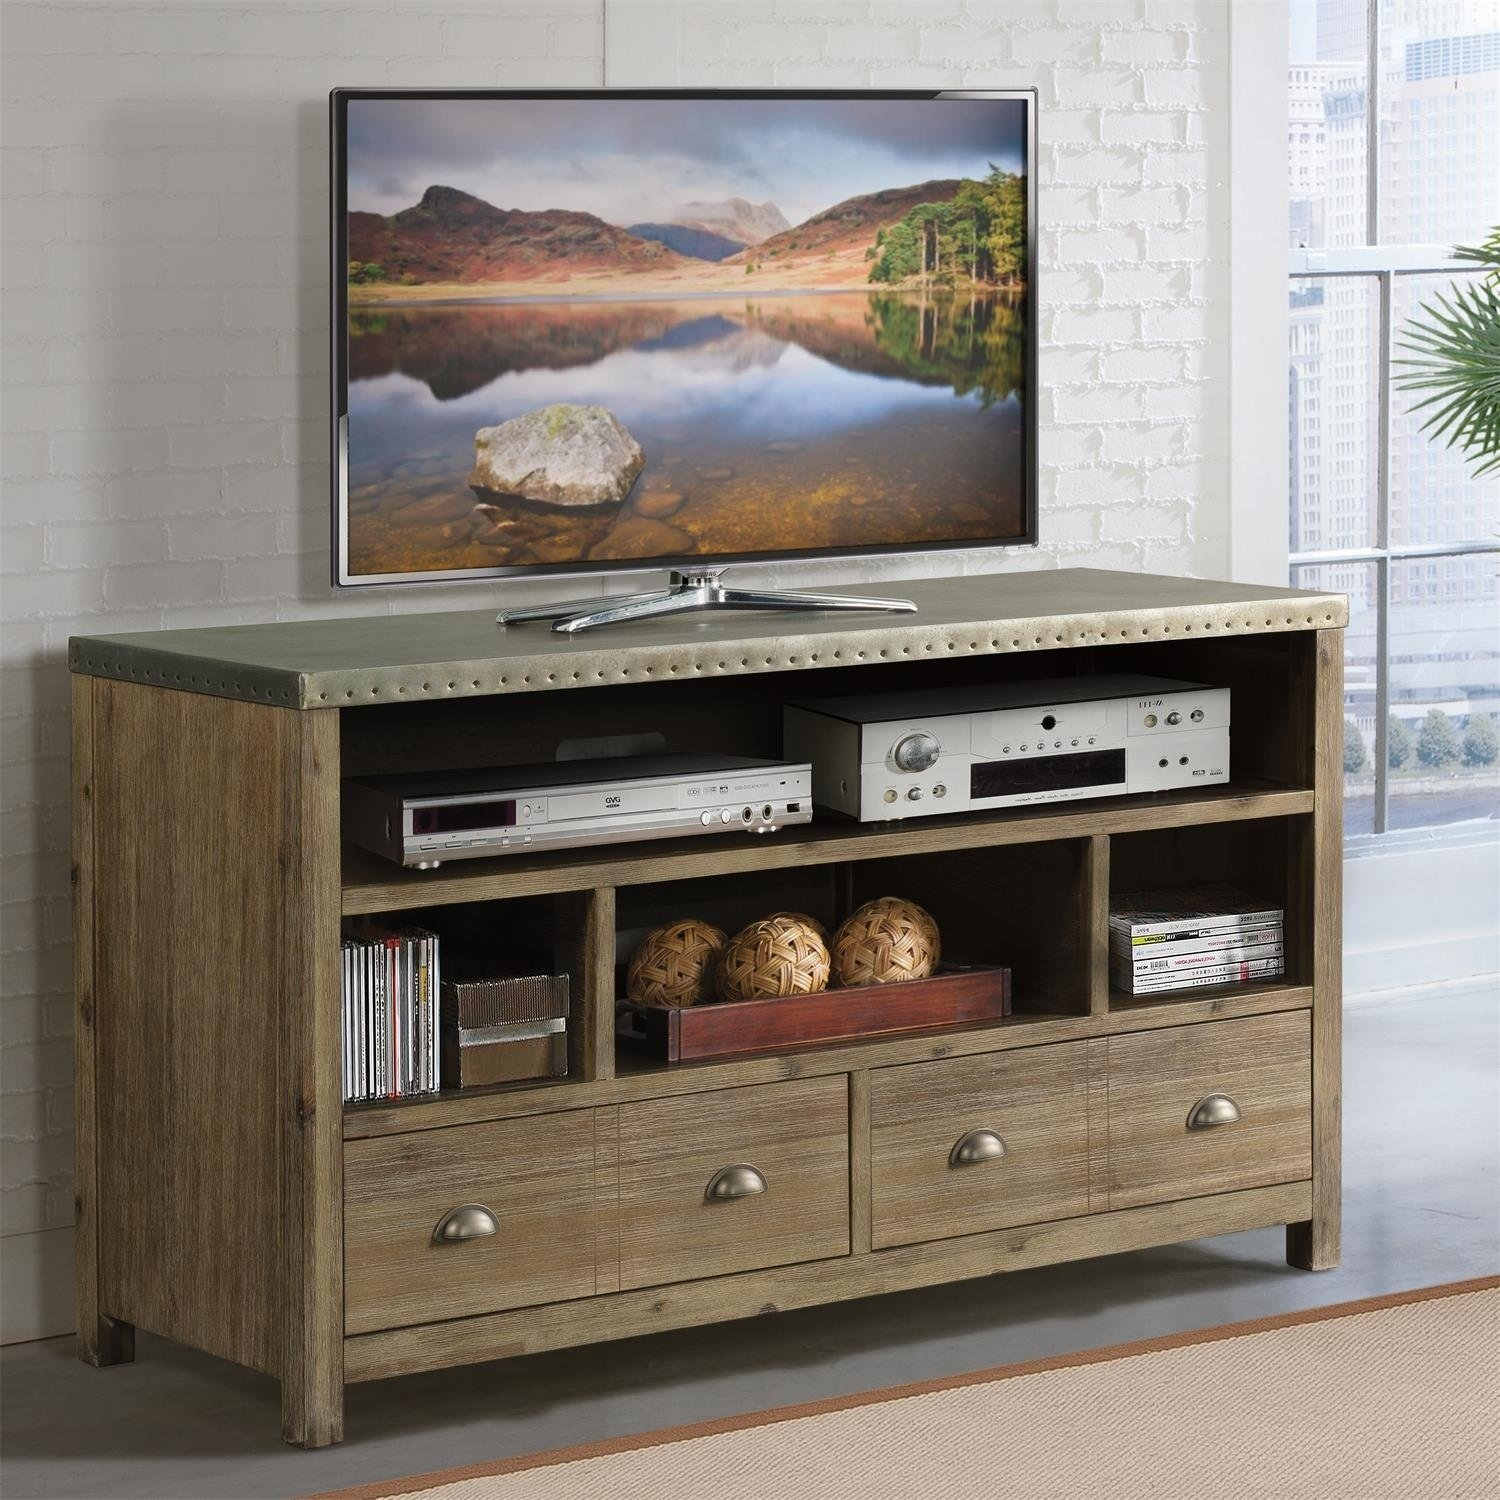 Shop Liam 54 Inch Tv Console – 54 Inches – Free Shipping Today Throughout Canyon 54 Inch Tv Stands (View 7 of 30)